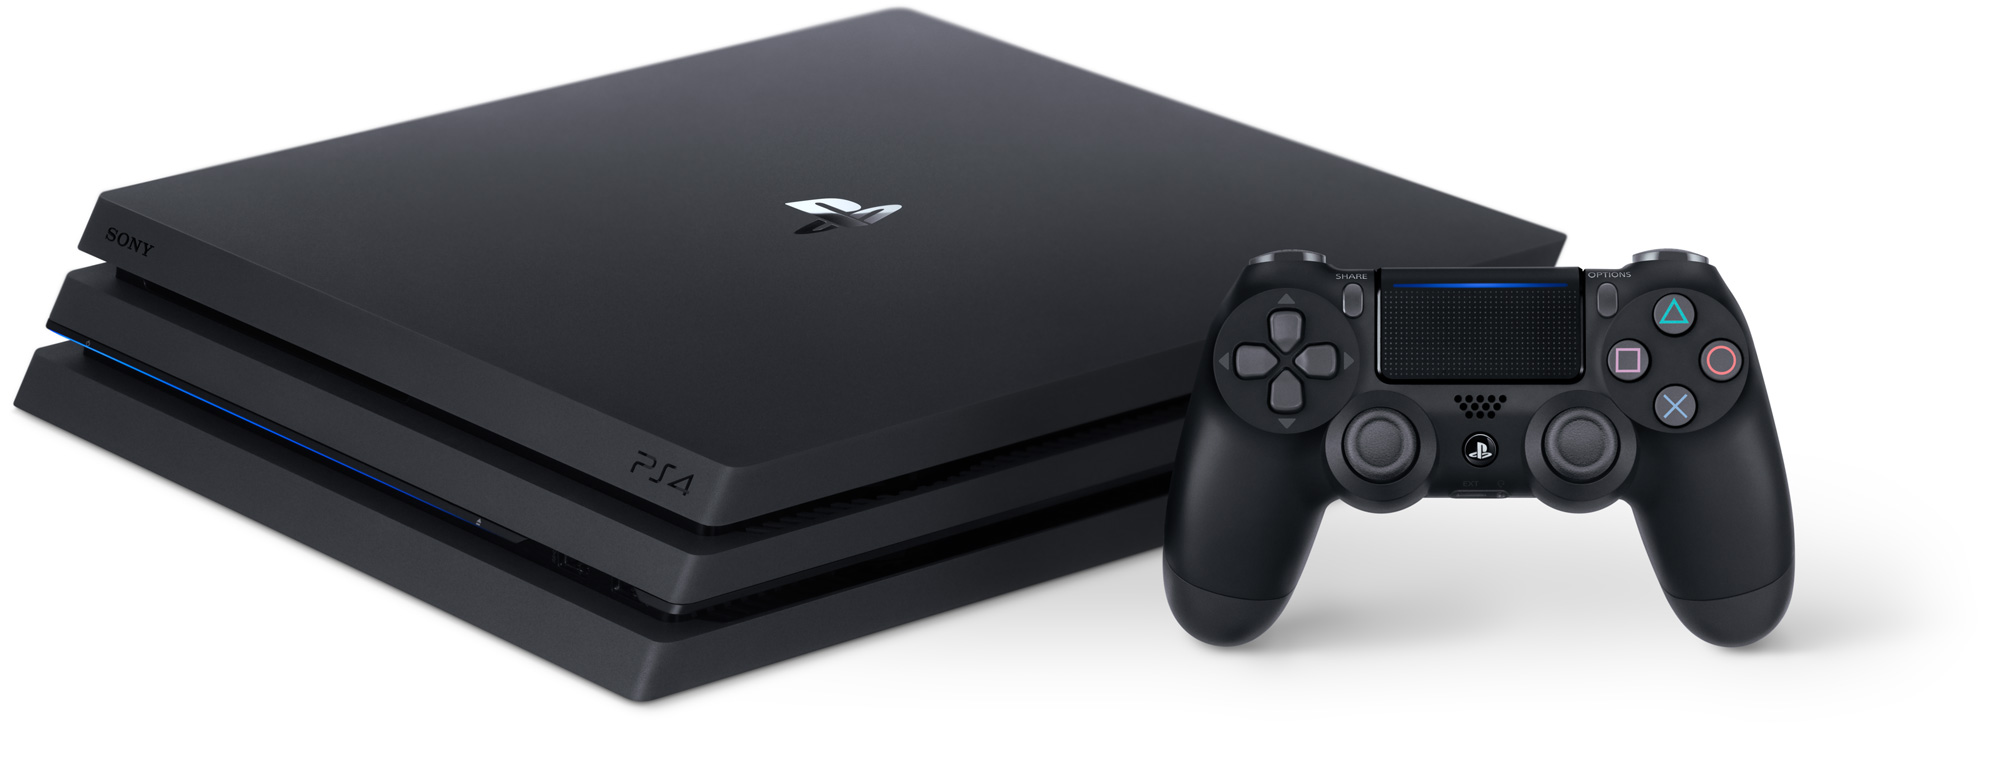 f9635f744e1 PlayStation 4 Pro Review: 4K gaming is here – but is it worth upgrading  now? | South China Morning Post